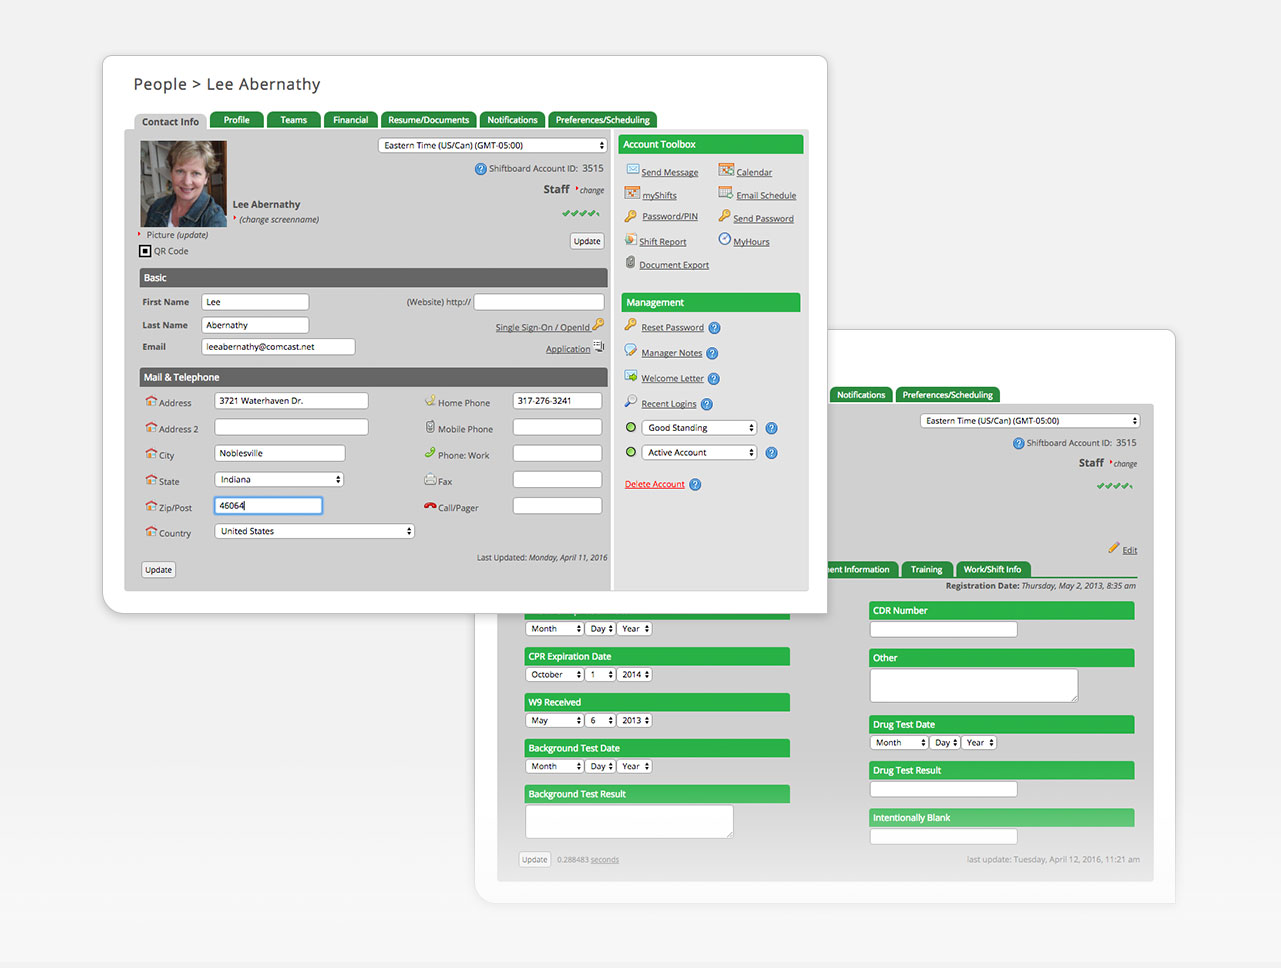 Applicant tracking for potential new employees